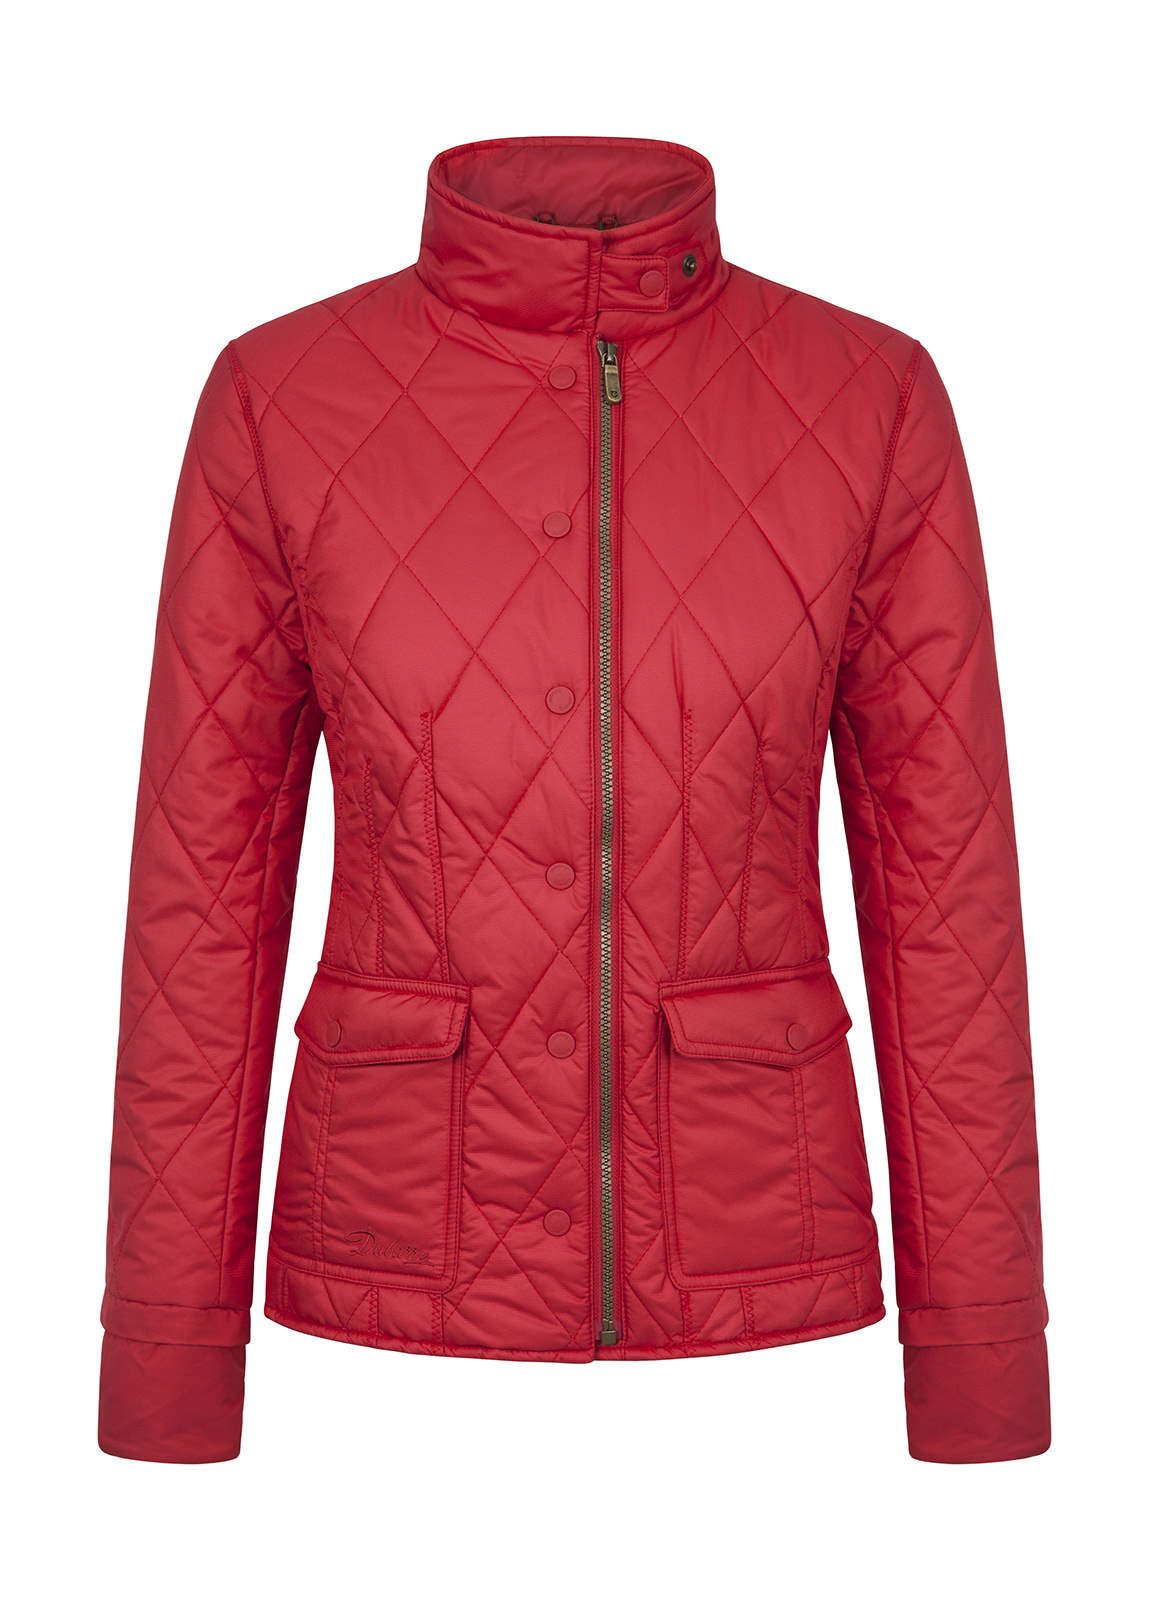 Carra Women's Quilted Jacket - Red